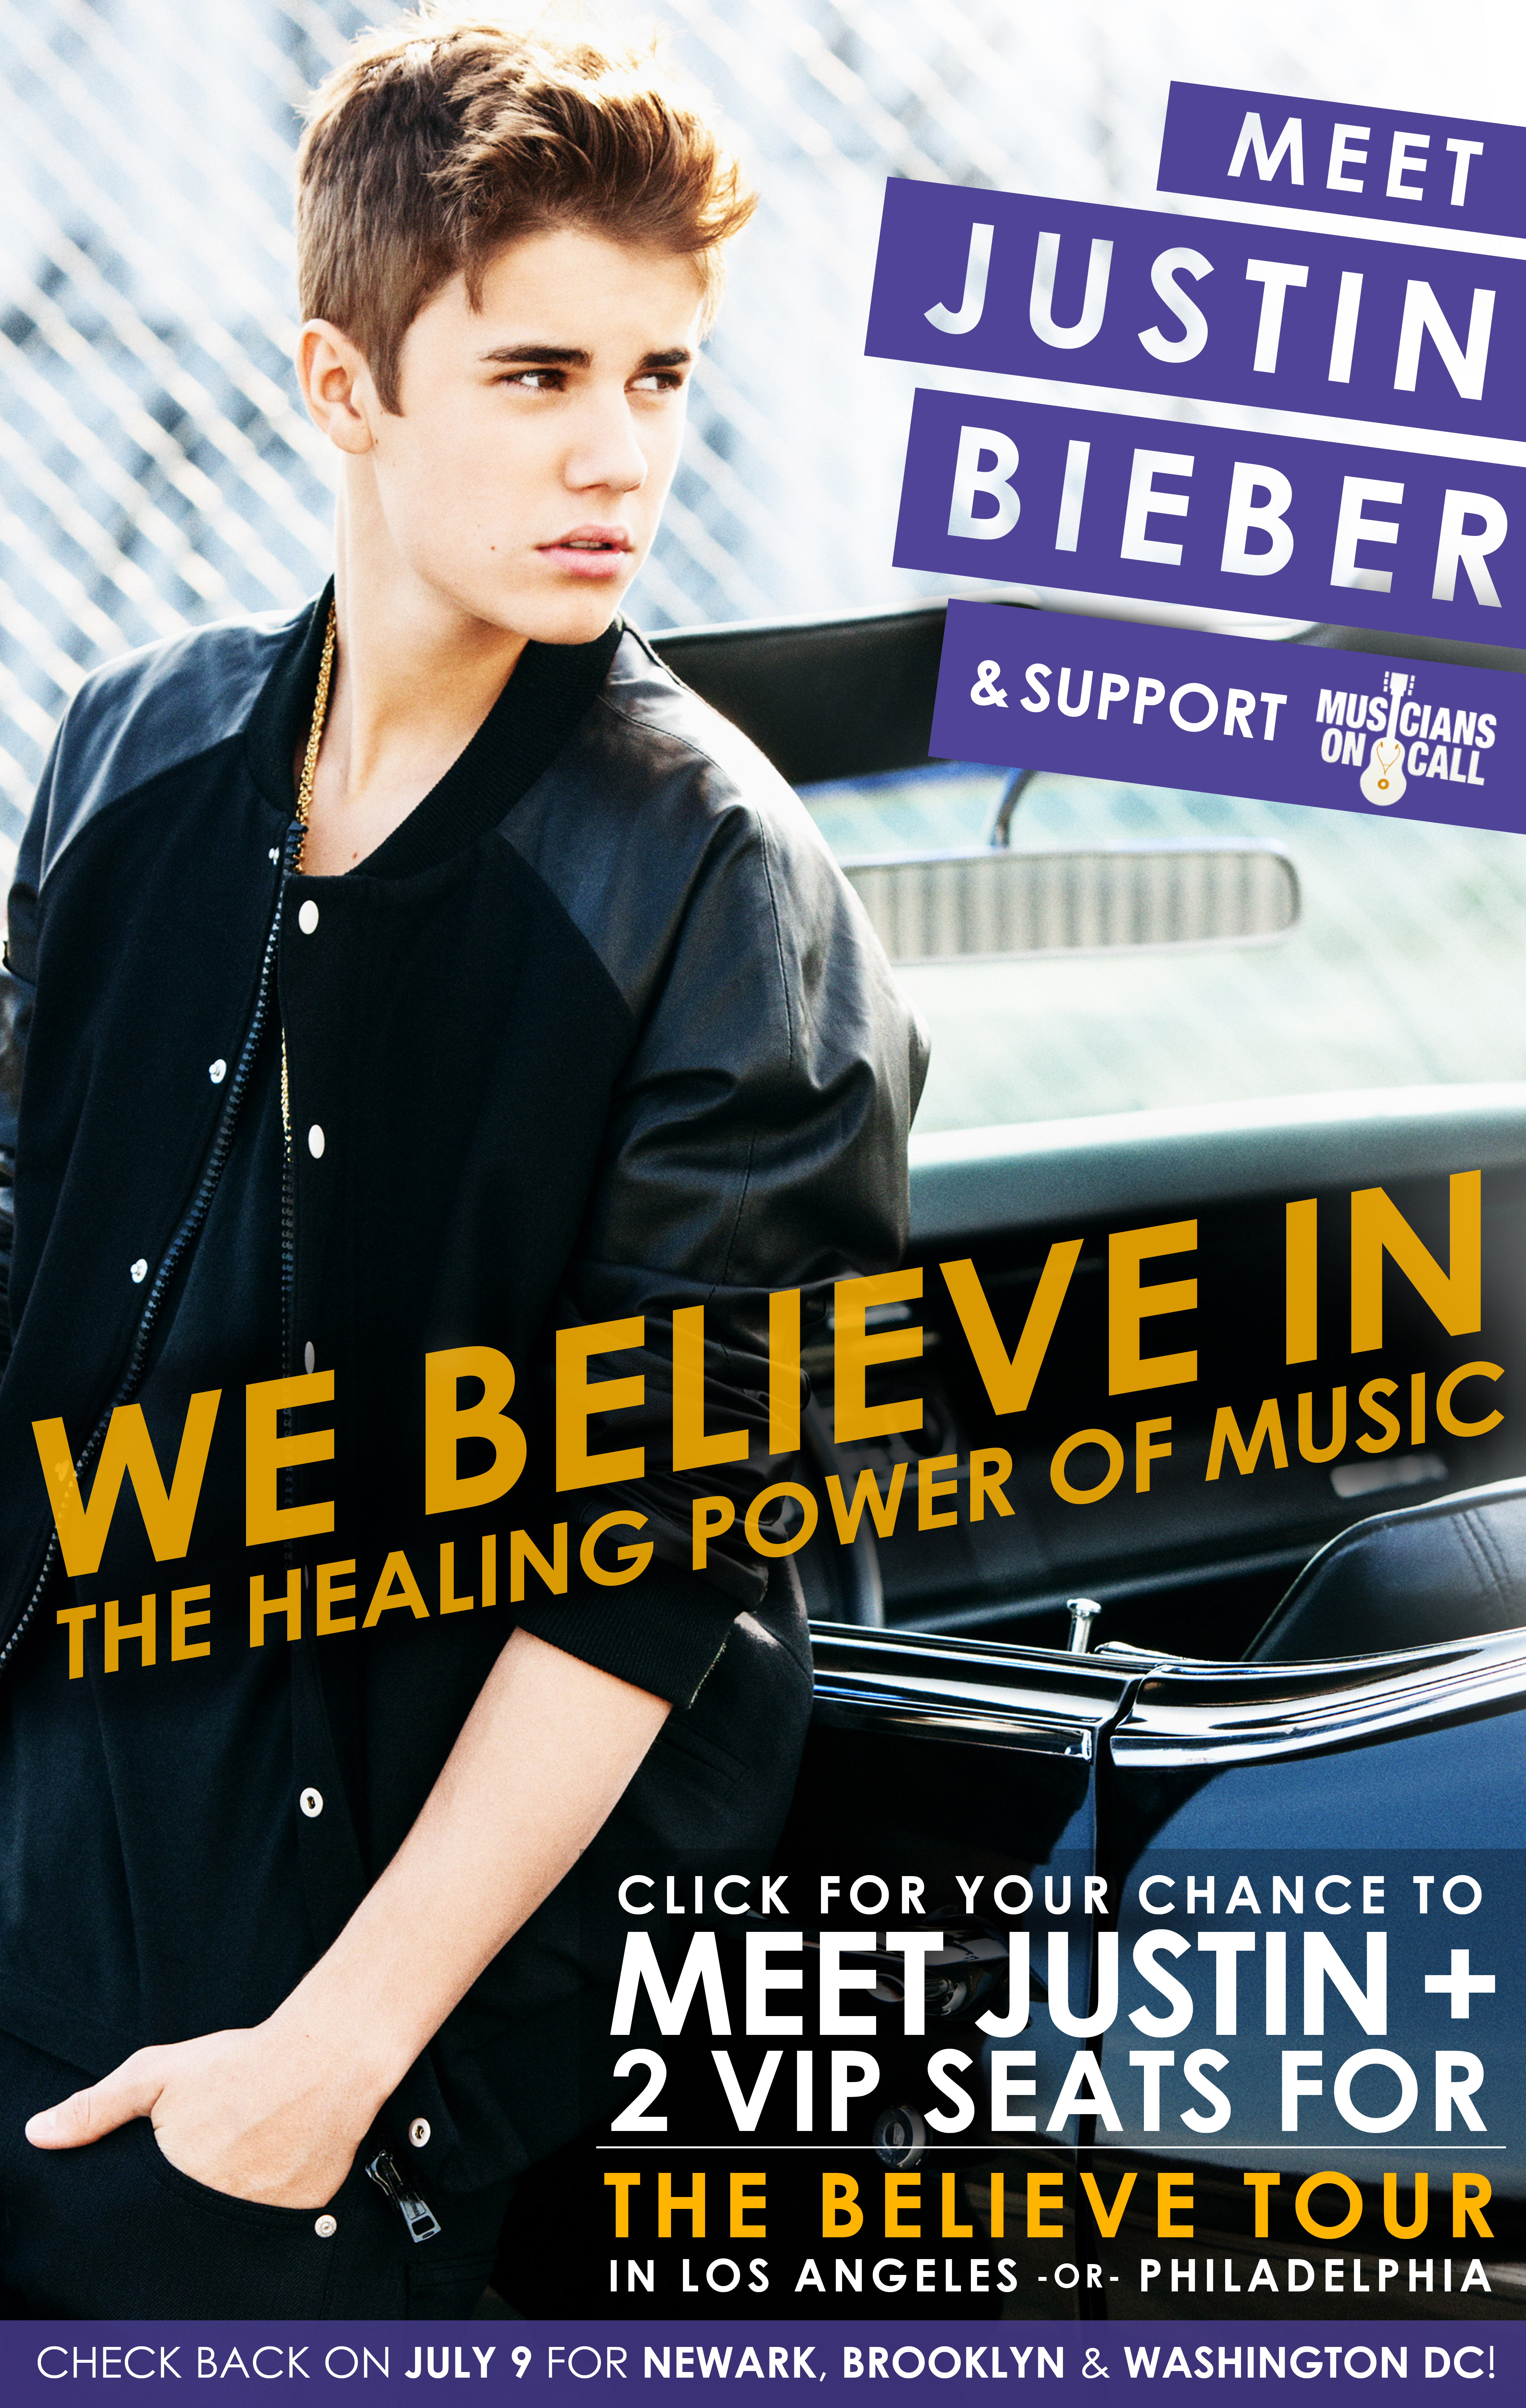 Charitybuzz Meet Justin Bieber Plus 2 Great Seats For His June 25